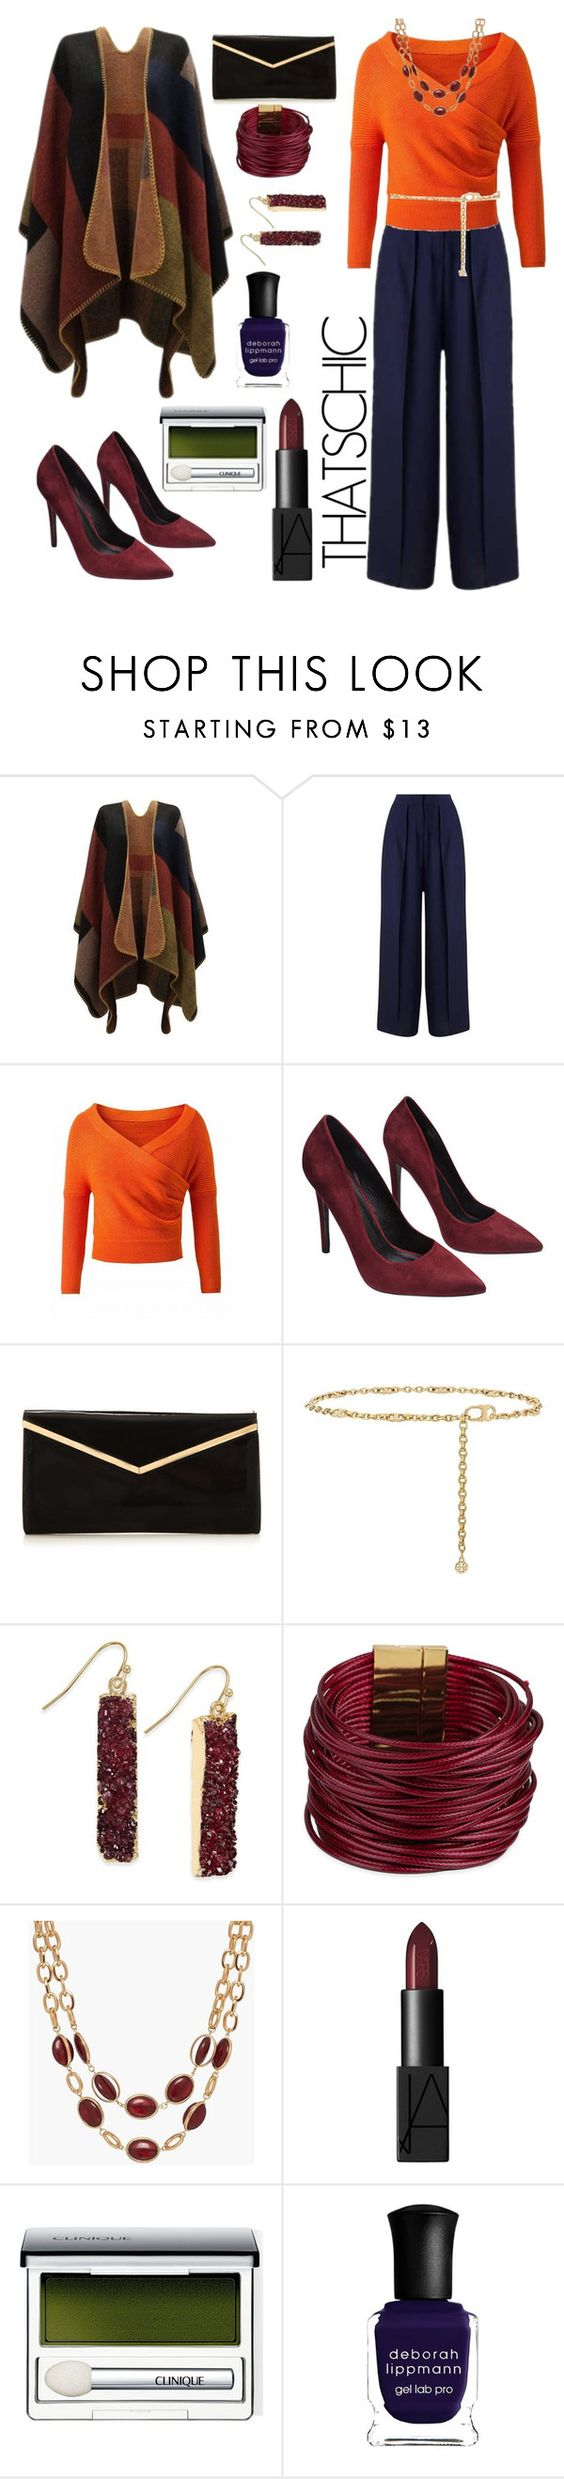 """""""Cozy"""" by whatbigeyes ❤ liked on Polyvore featuring Miss Selfridge, WithChic, Wet Seal, Tory Burch, INC International Concepts, SAACHI Style, Talbots, NARS Cosmetics, Clinique and Deborah Lippmann"""